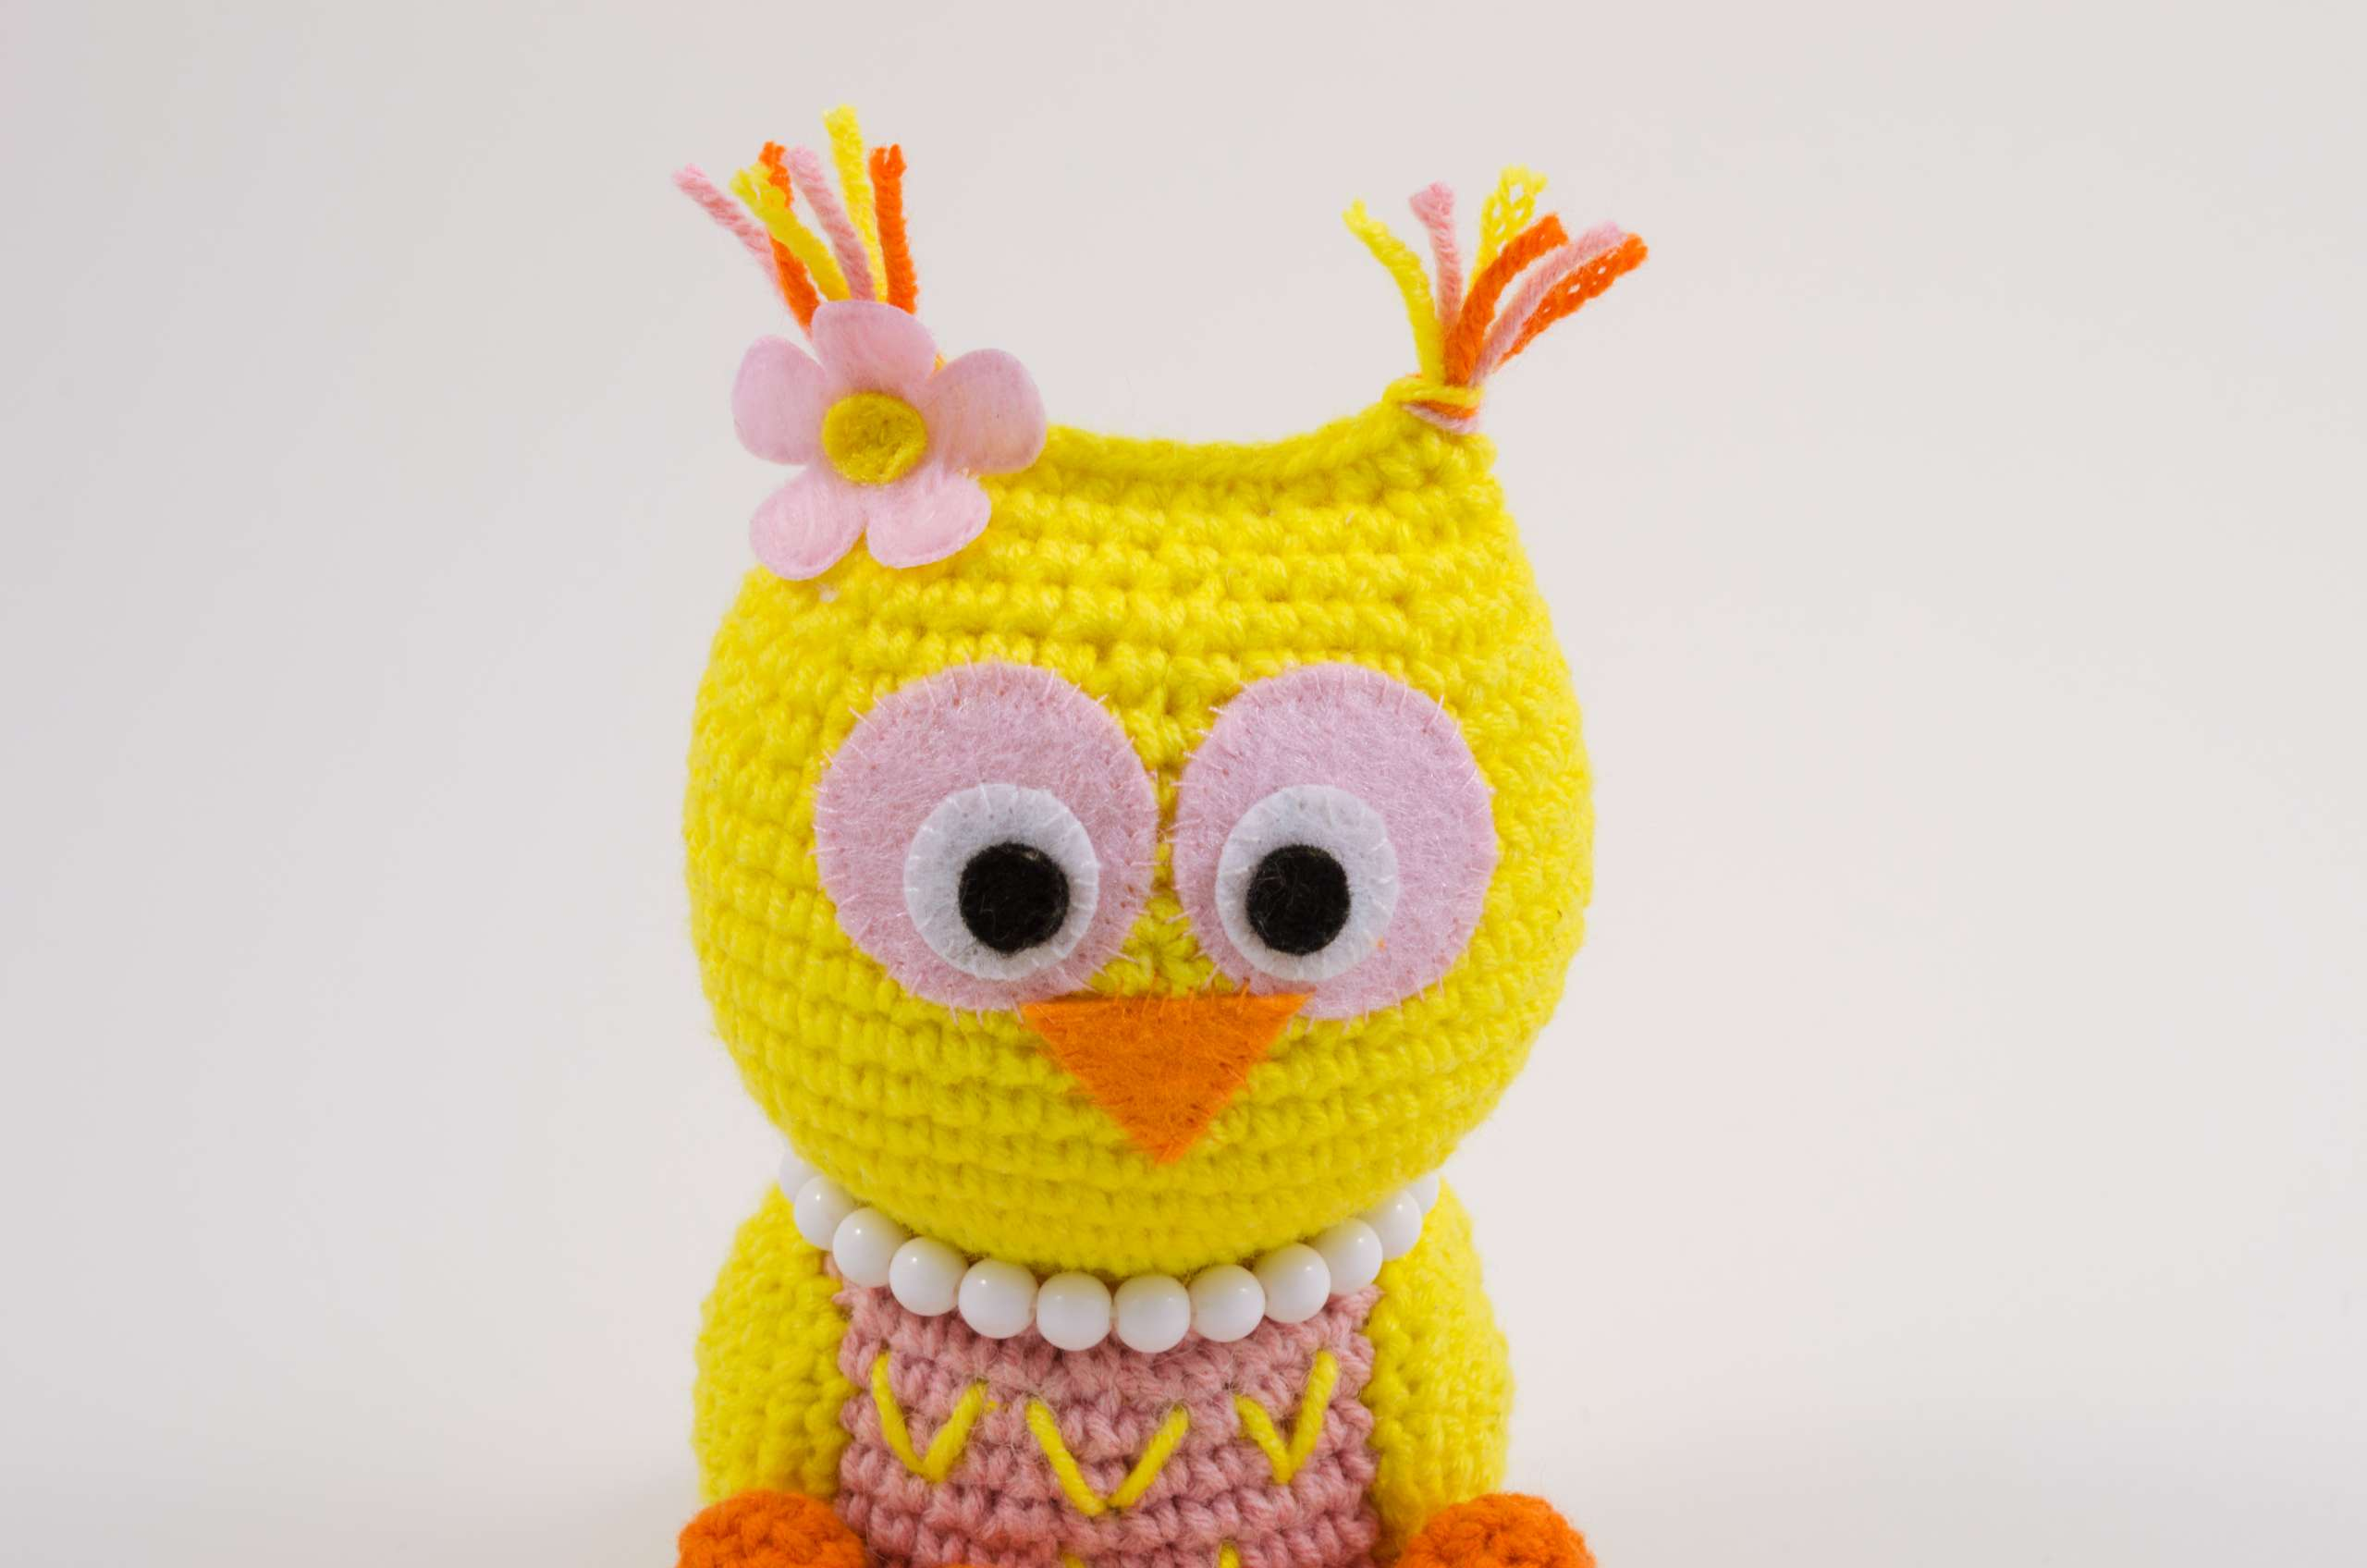 crochet baby owl close up view